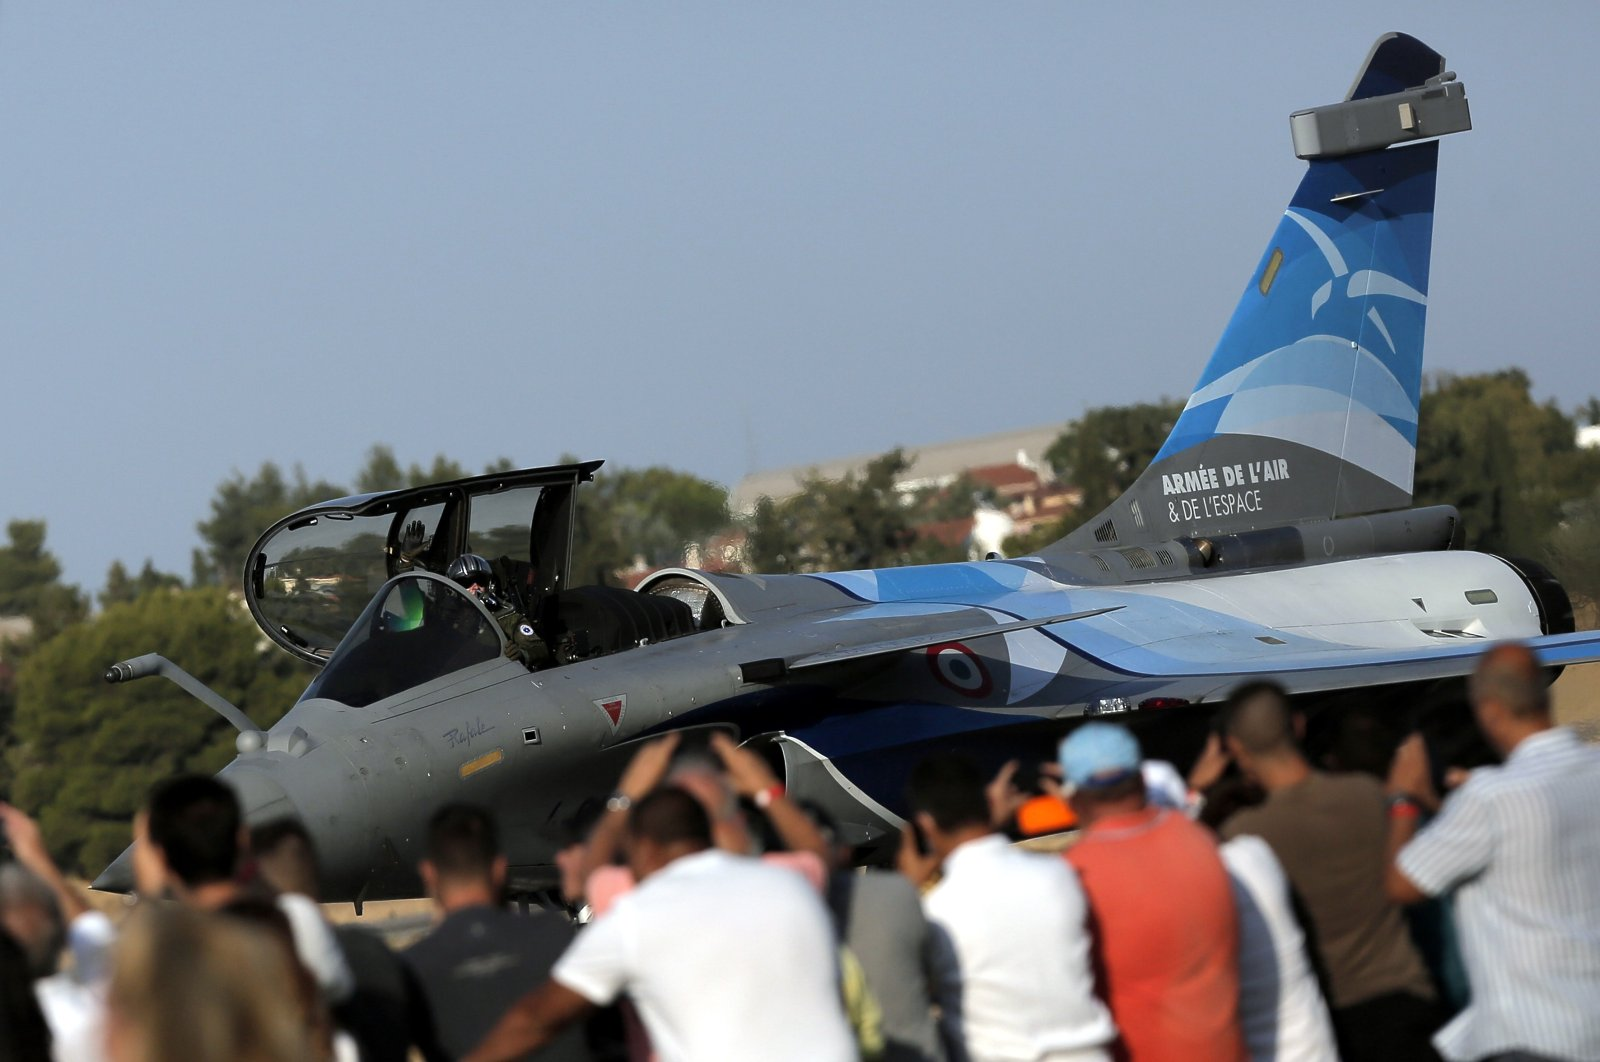 A French Rafale fighter jet in front of spectators during an airshow at Tanagra air base, north of Athens, Greece, Sept. 4, 2021. (EPA Photo)